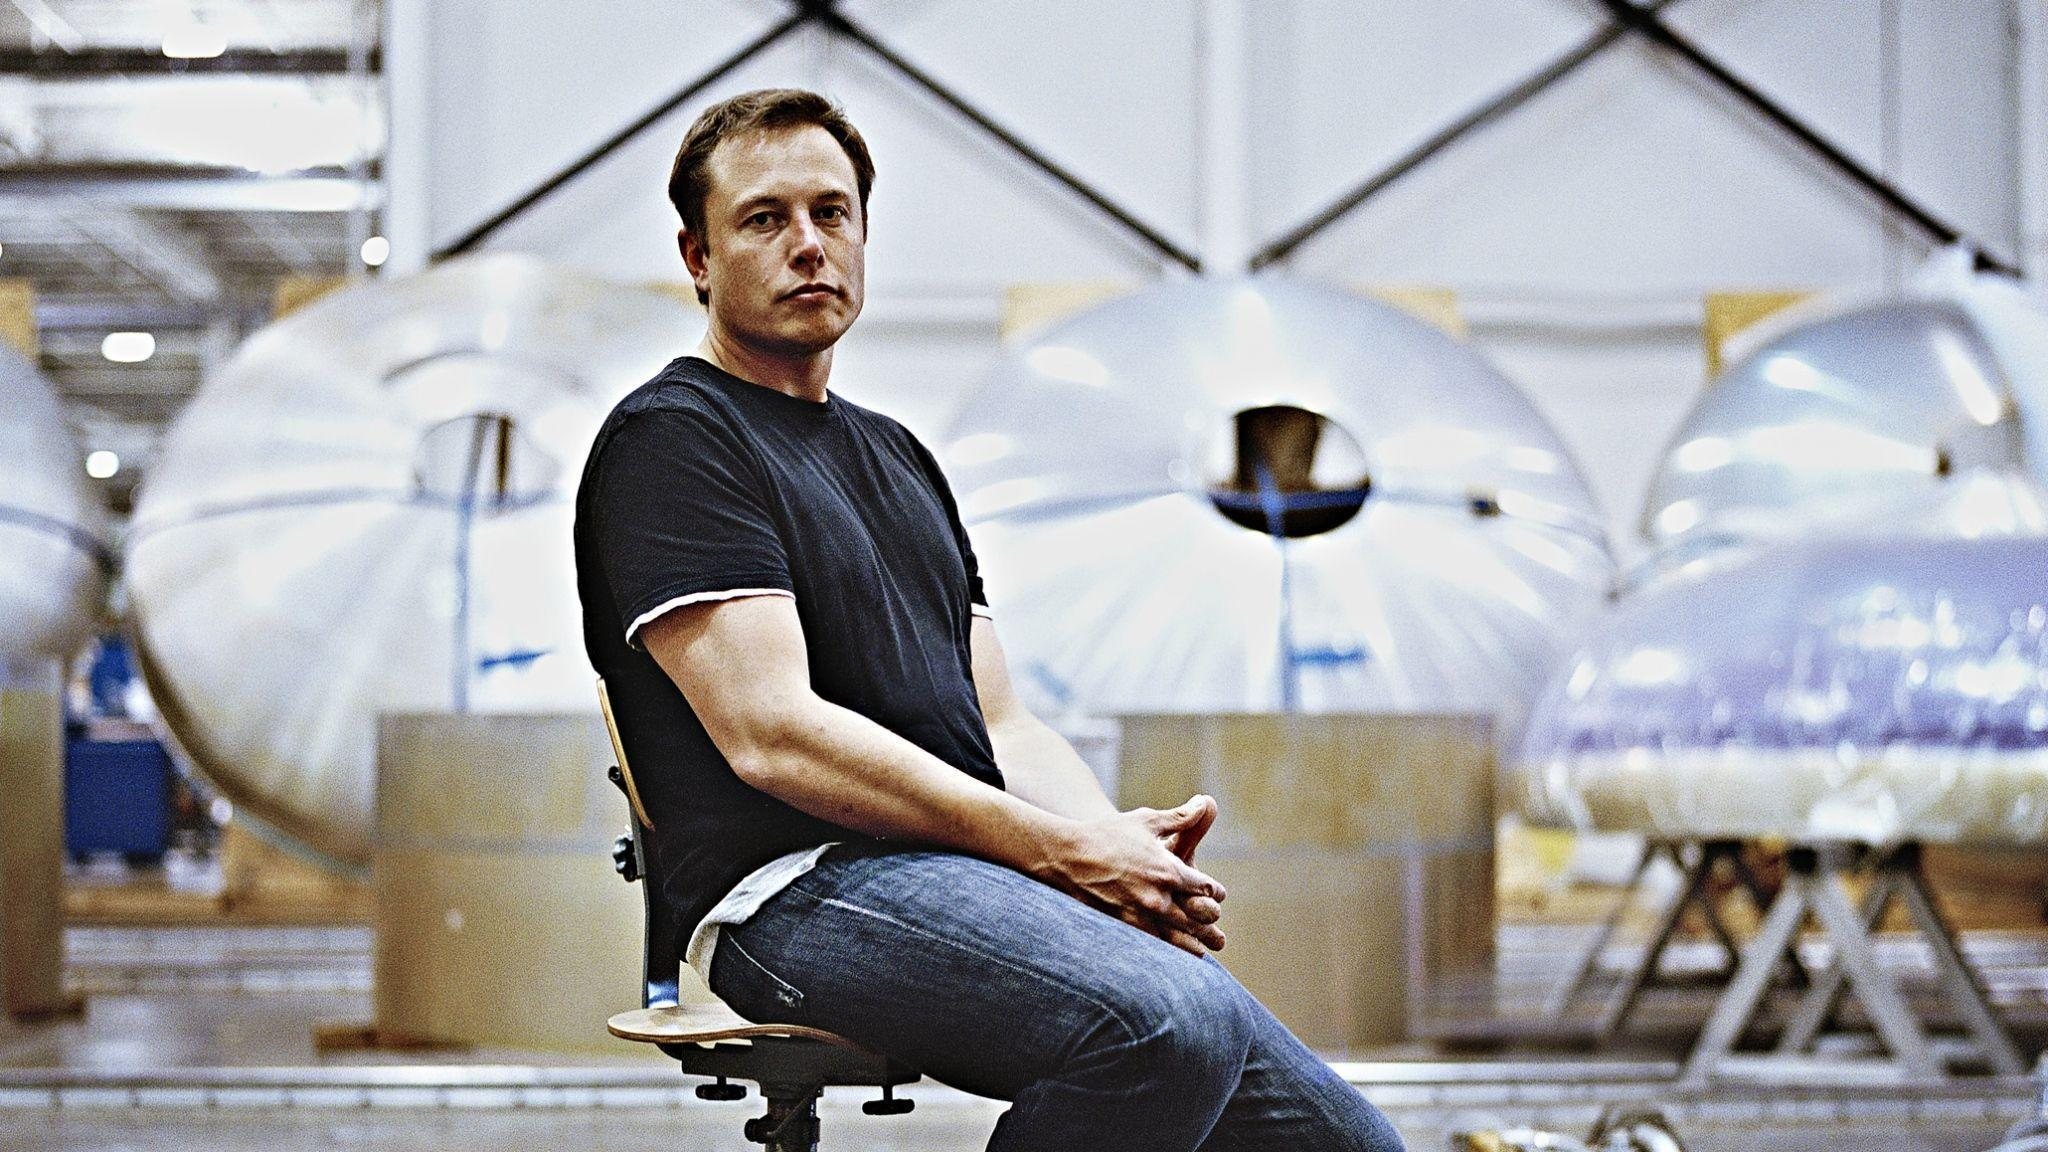 Elon Musk Wallpapers - Wallpaper Cave